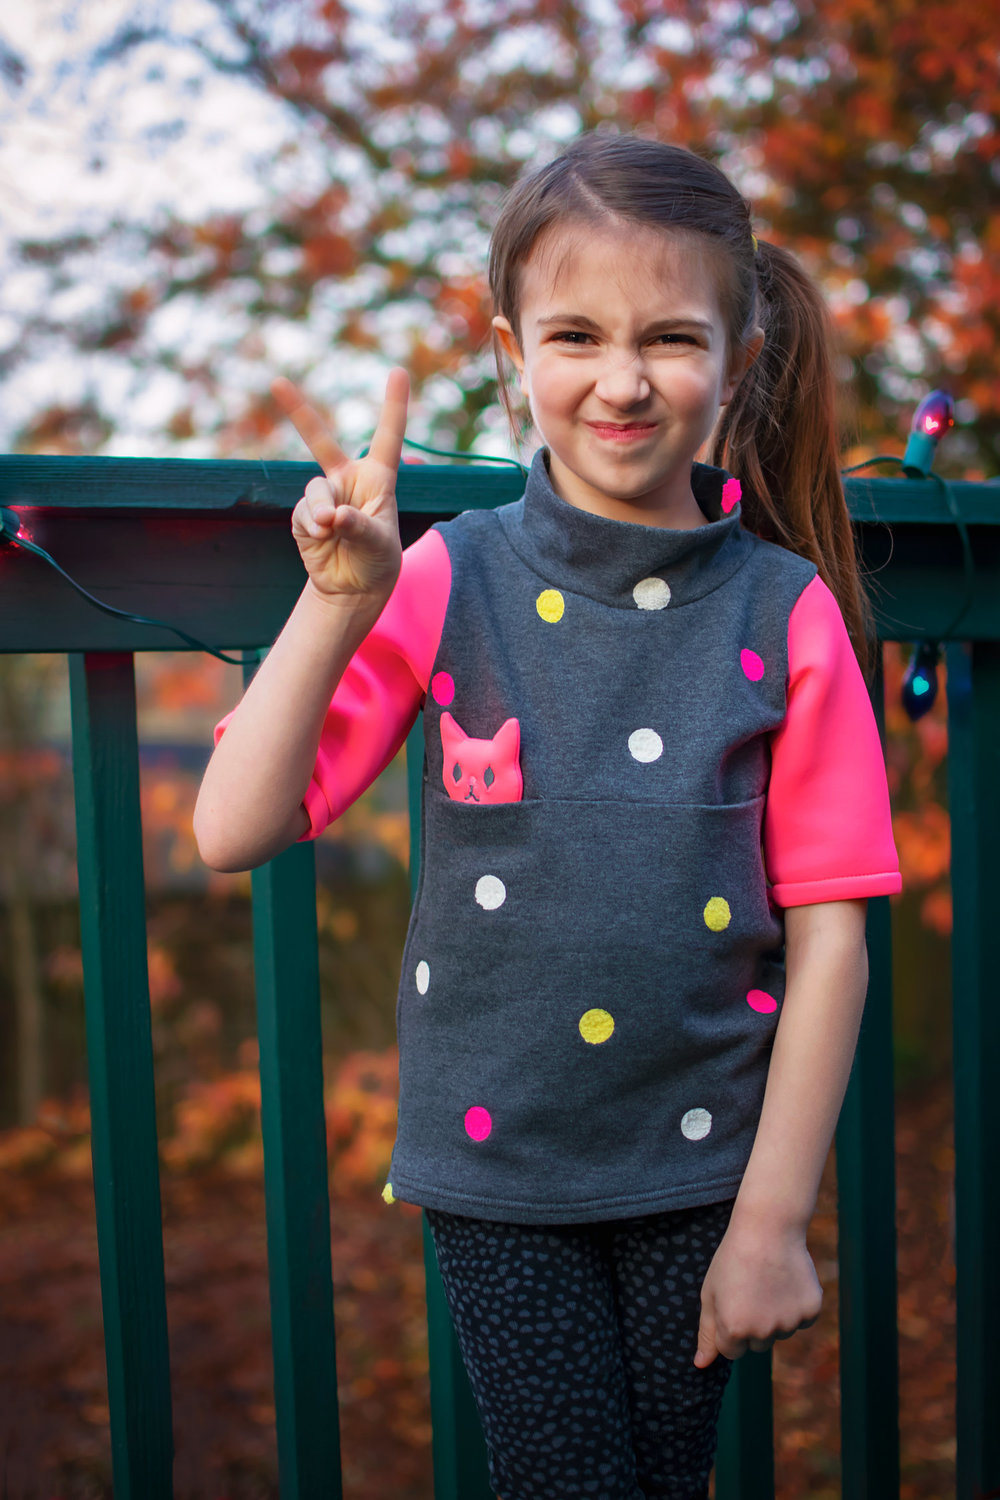 A festive Umaru Shirt PDF Pattern by Sew Chibi Designs for the Project Run & Play Holiday Tour! Kids and Teen fashion for winter 2018! Check out the sneaky kitty hiding in the Christmas tree! Click to buy your copy of the pattern!